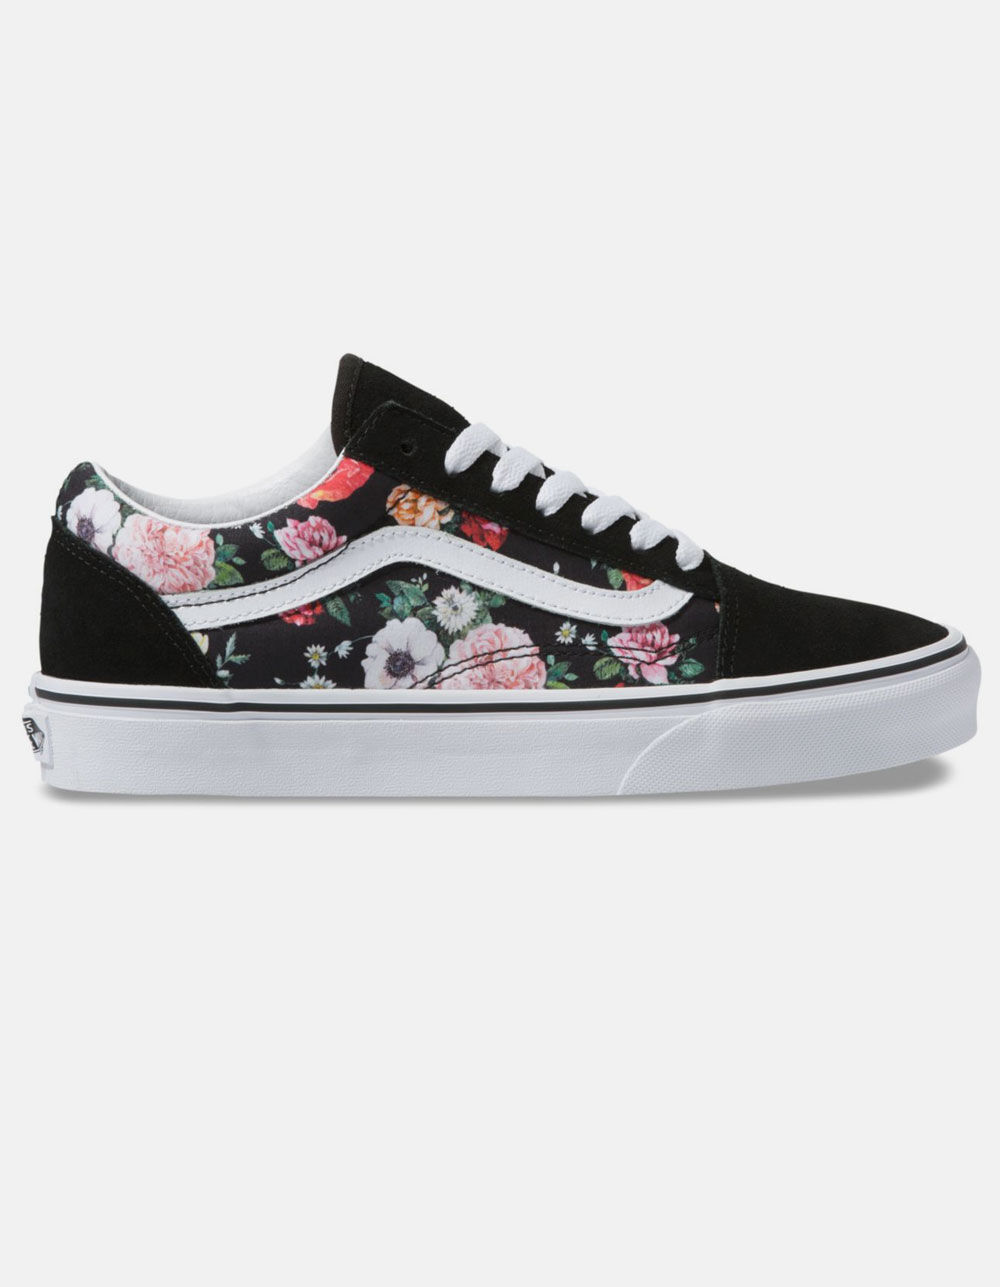 VANS Garden Floral Old Skool Shoes